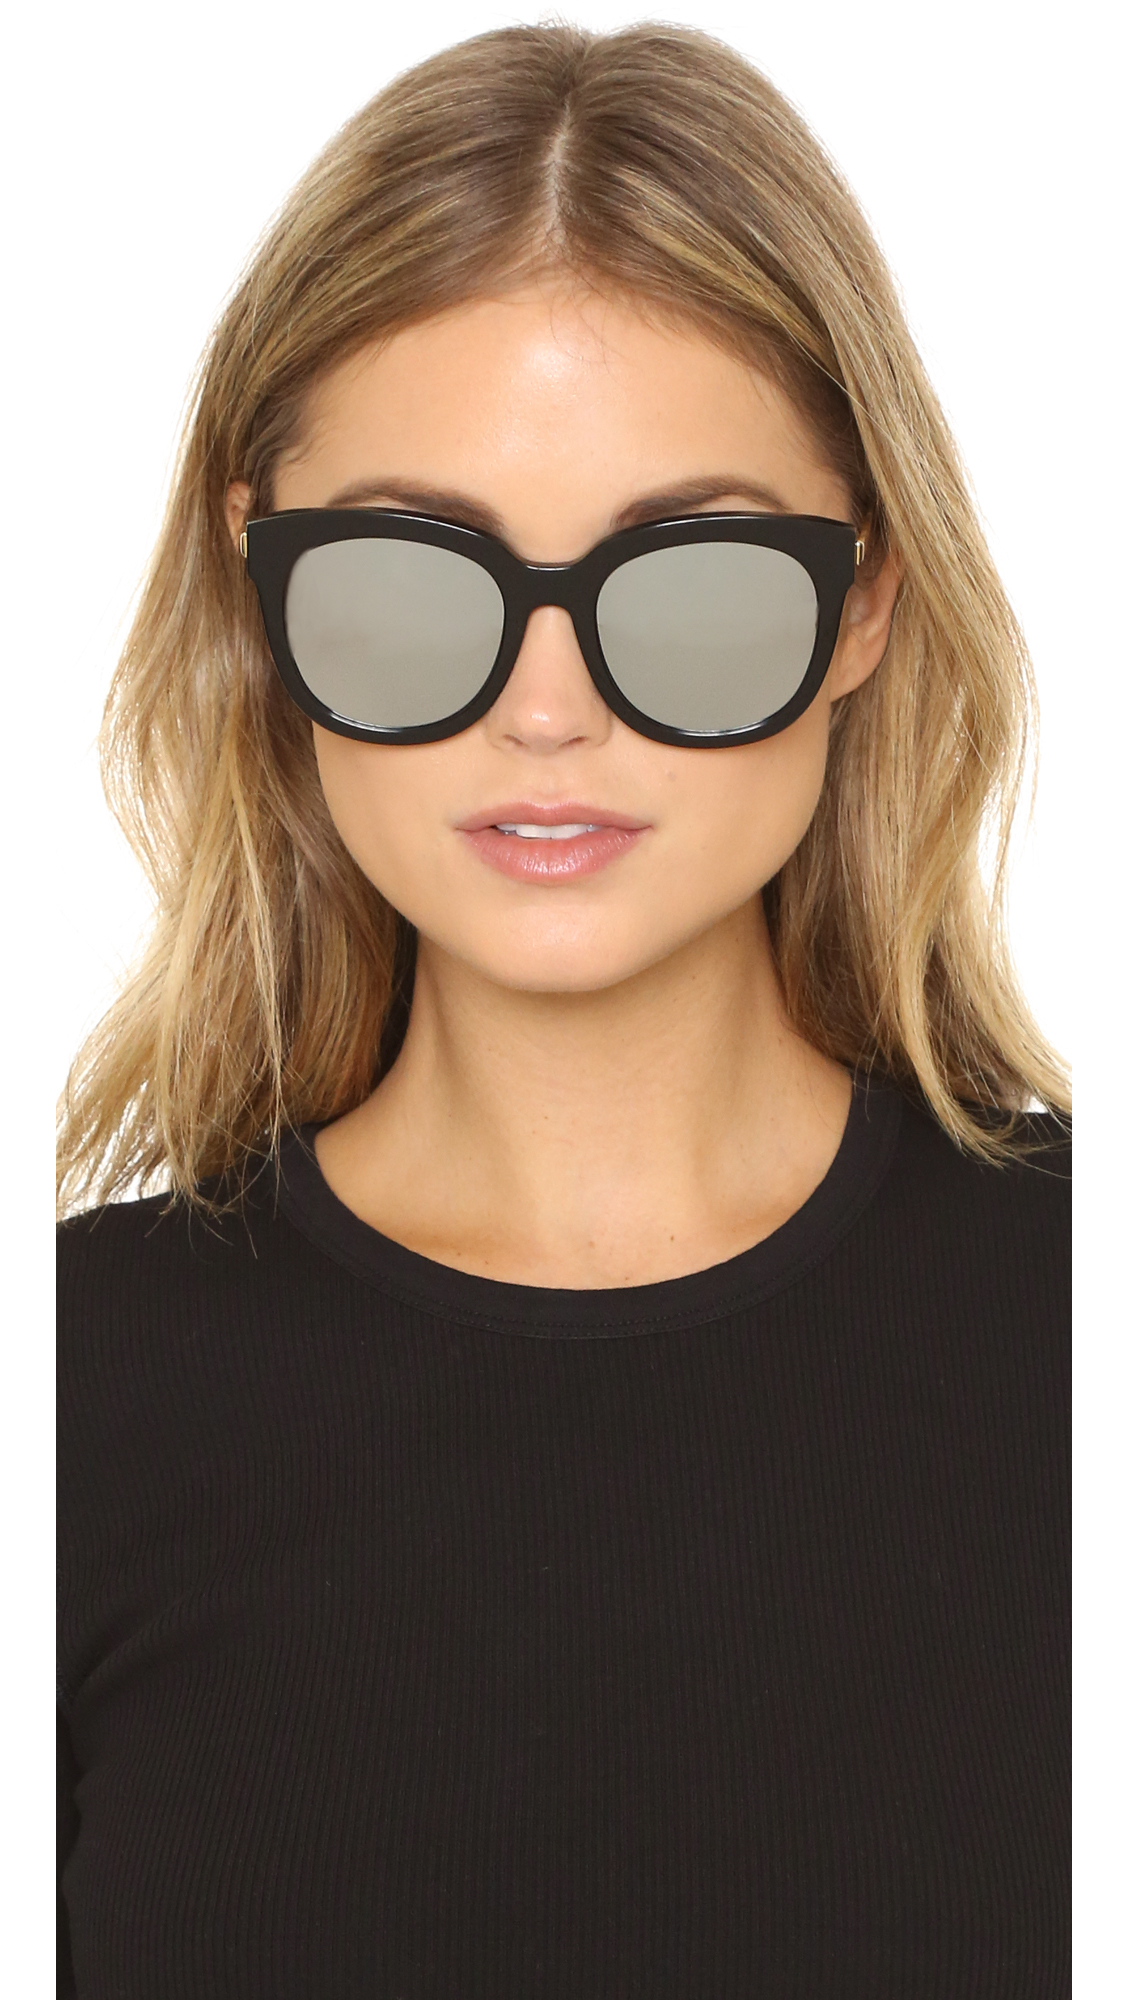 49ce0f5b5cac Gentle Monster Cuba 502 Sunglasses in Black - Lyst